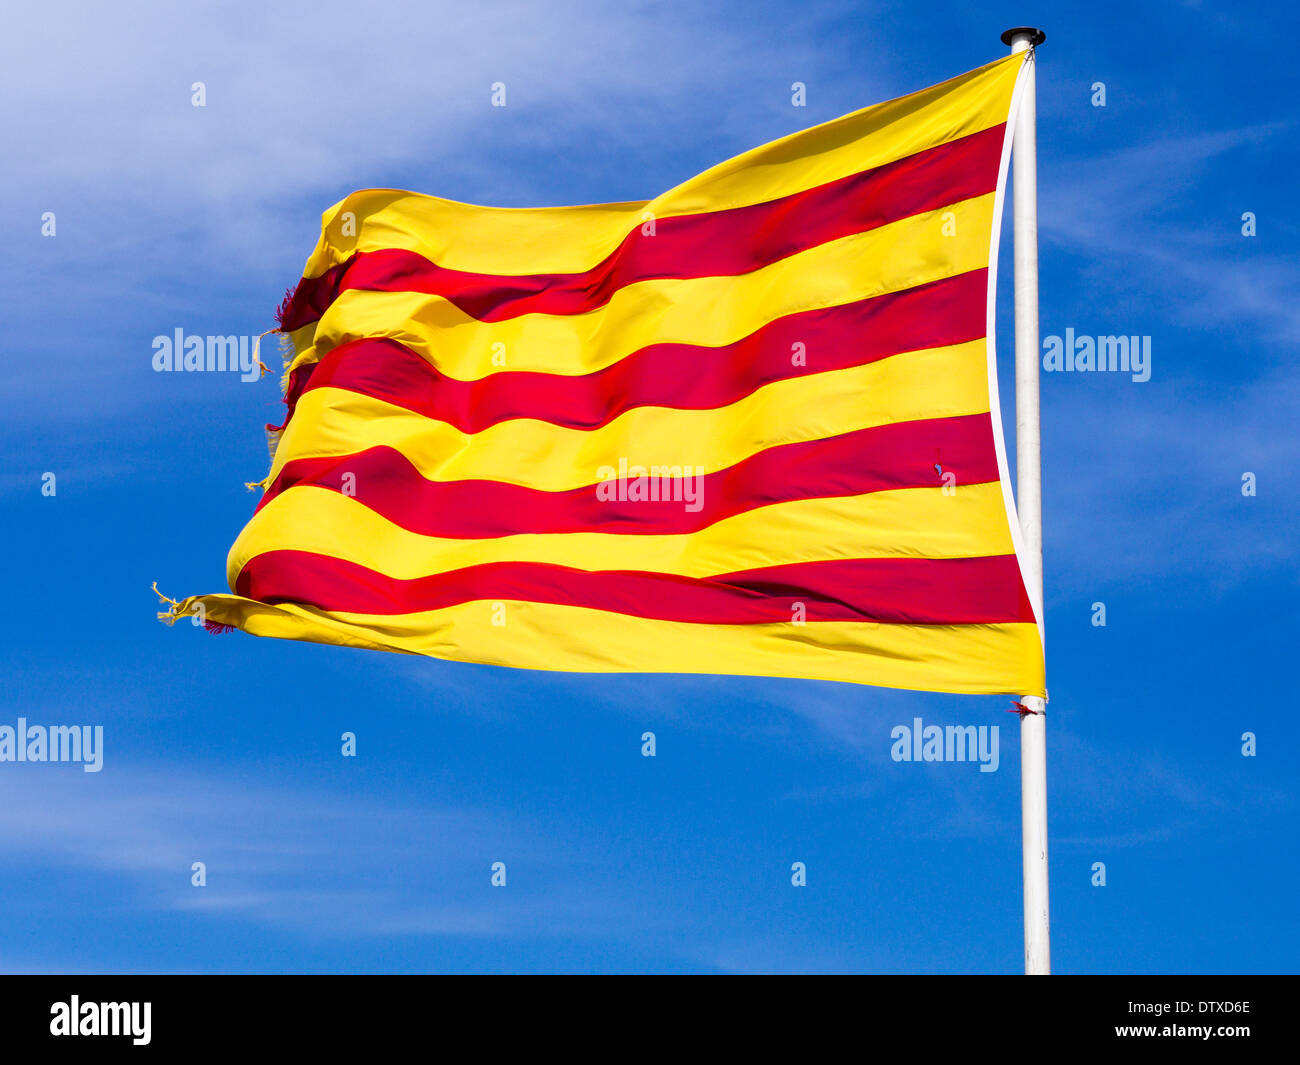 Catalonian Flag against a bright blue sky. The flag of Catalonia shines in the sun on a white pole. Slightly frayed. - Stock Image